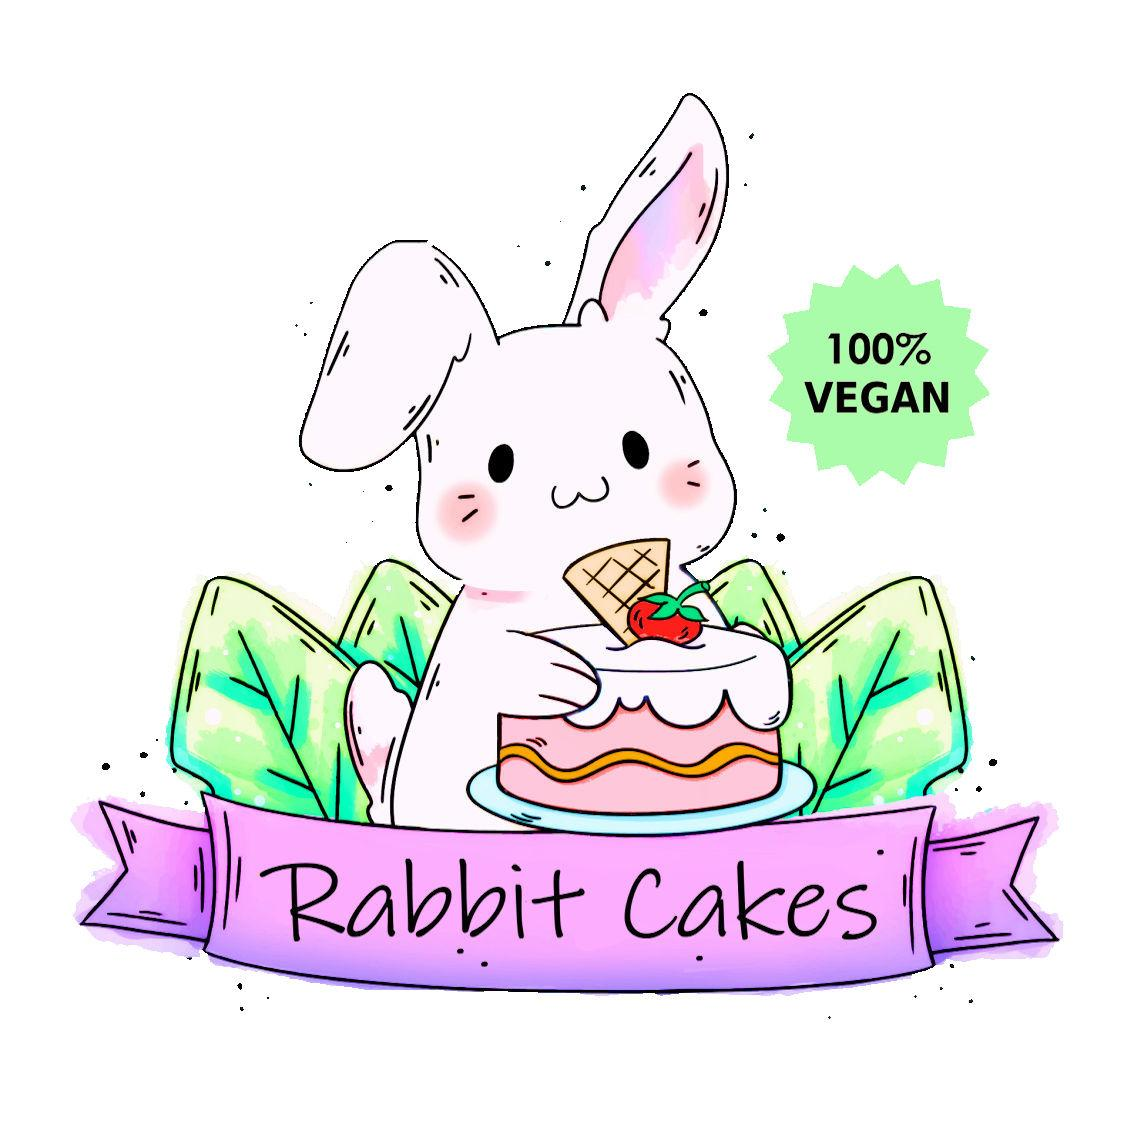 Rabbit - Vegan Cafe